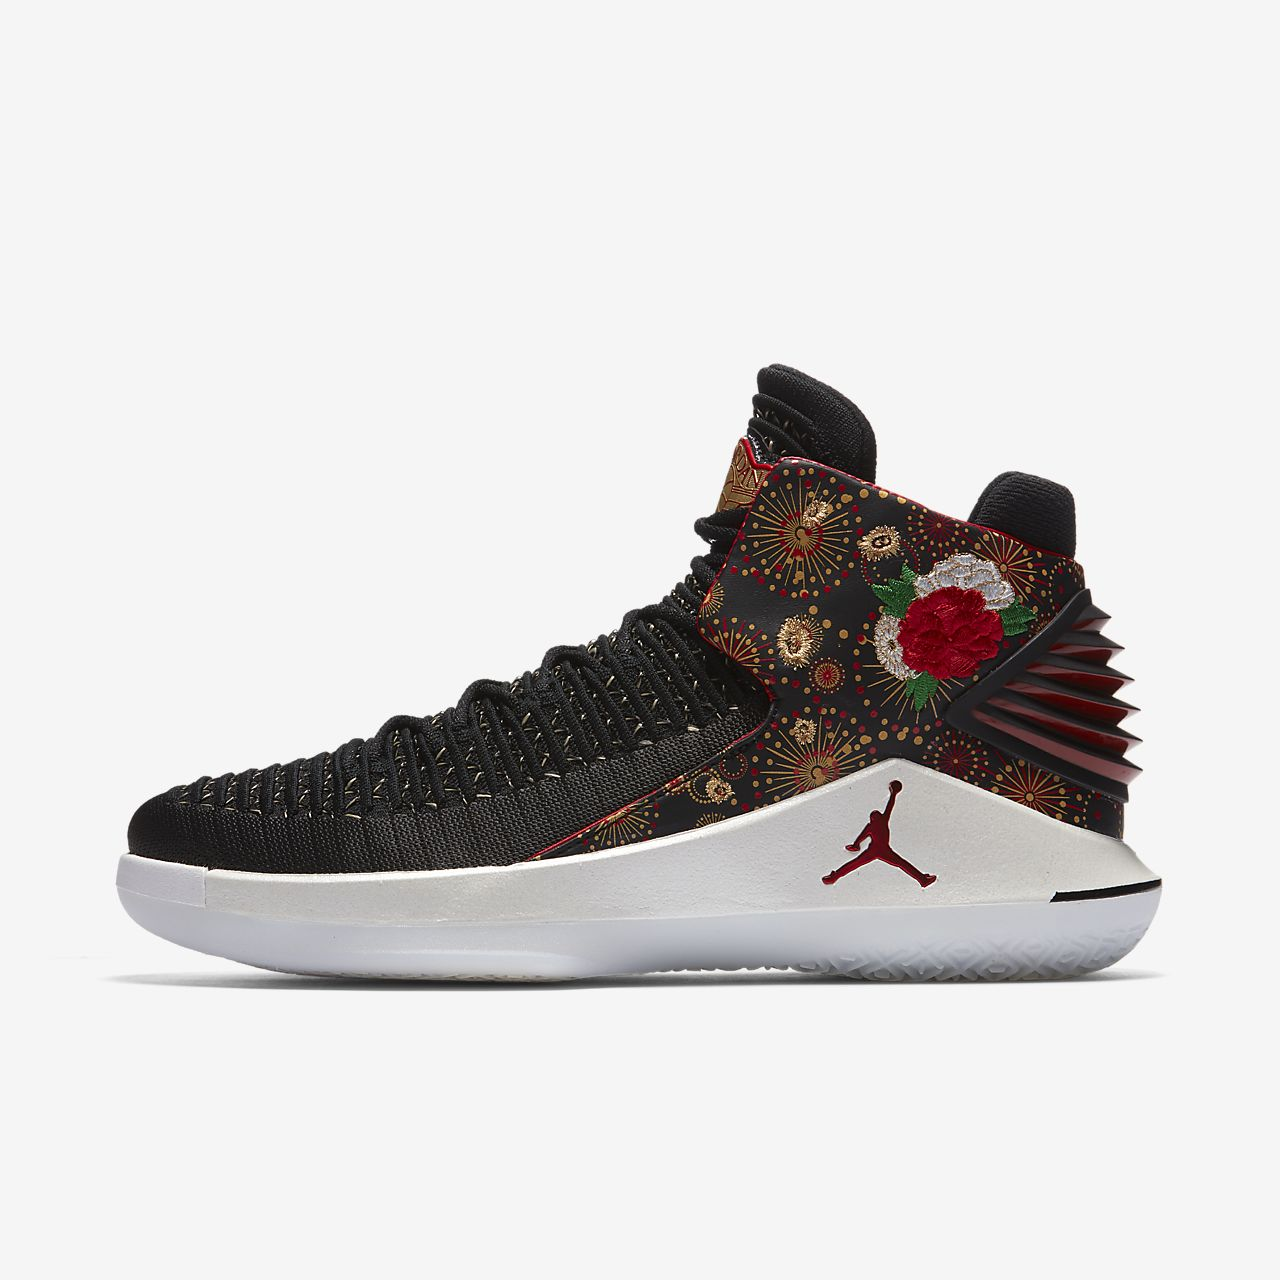 ... Air Jordan XXXII 'Chinese New Year' Men's Basketball Shoe